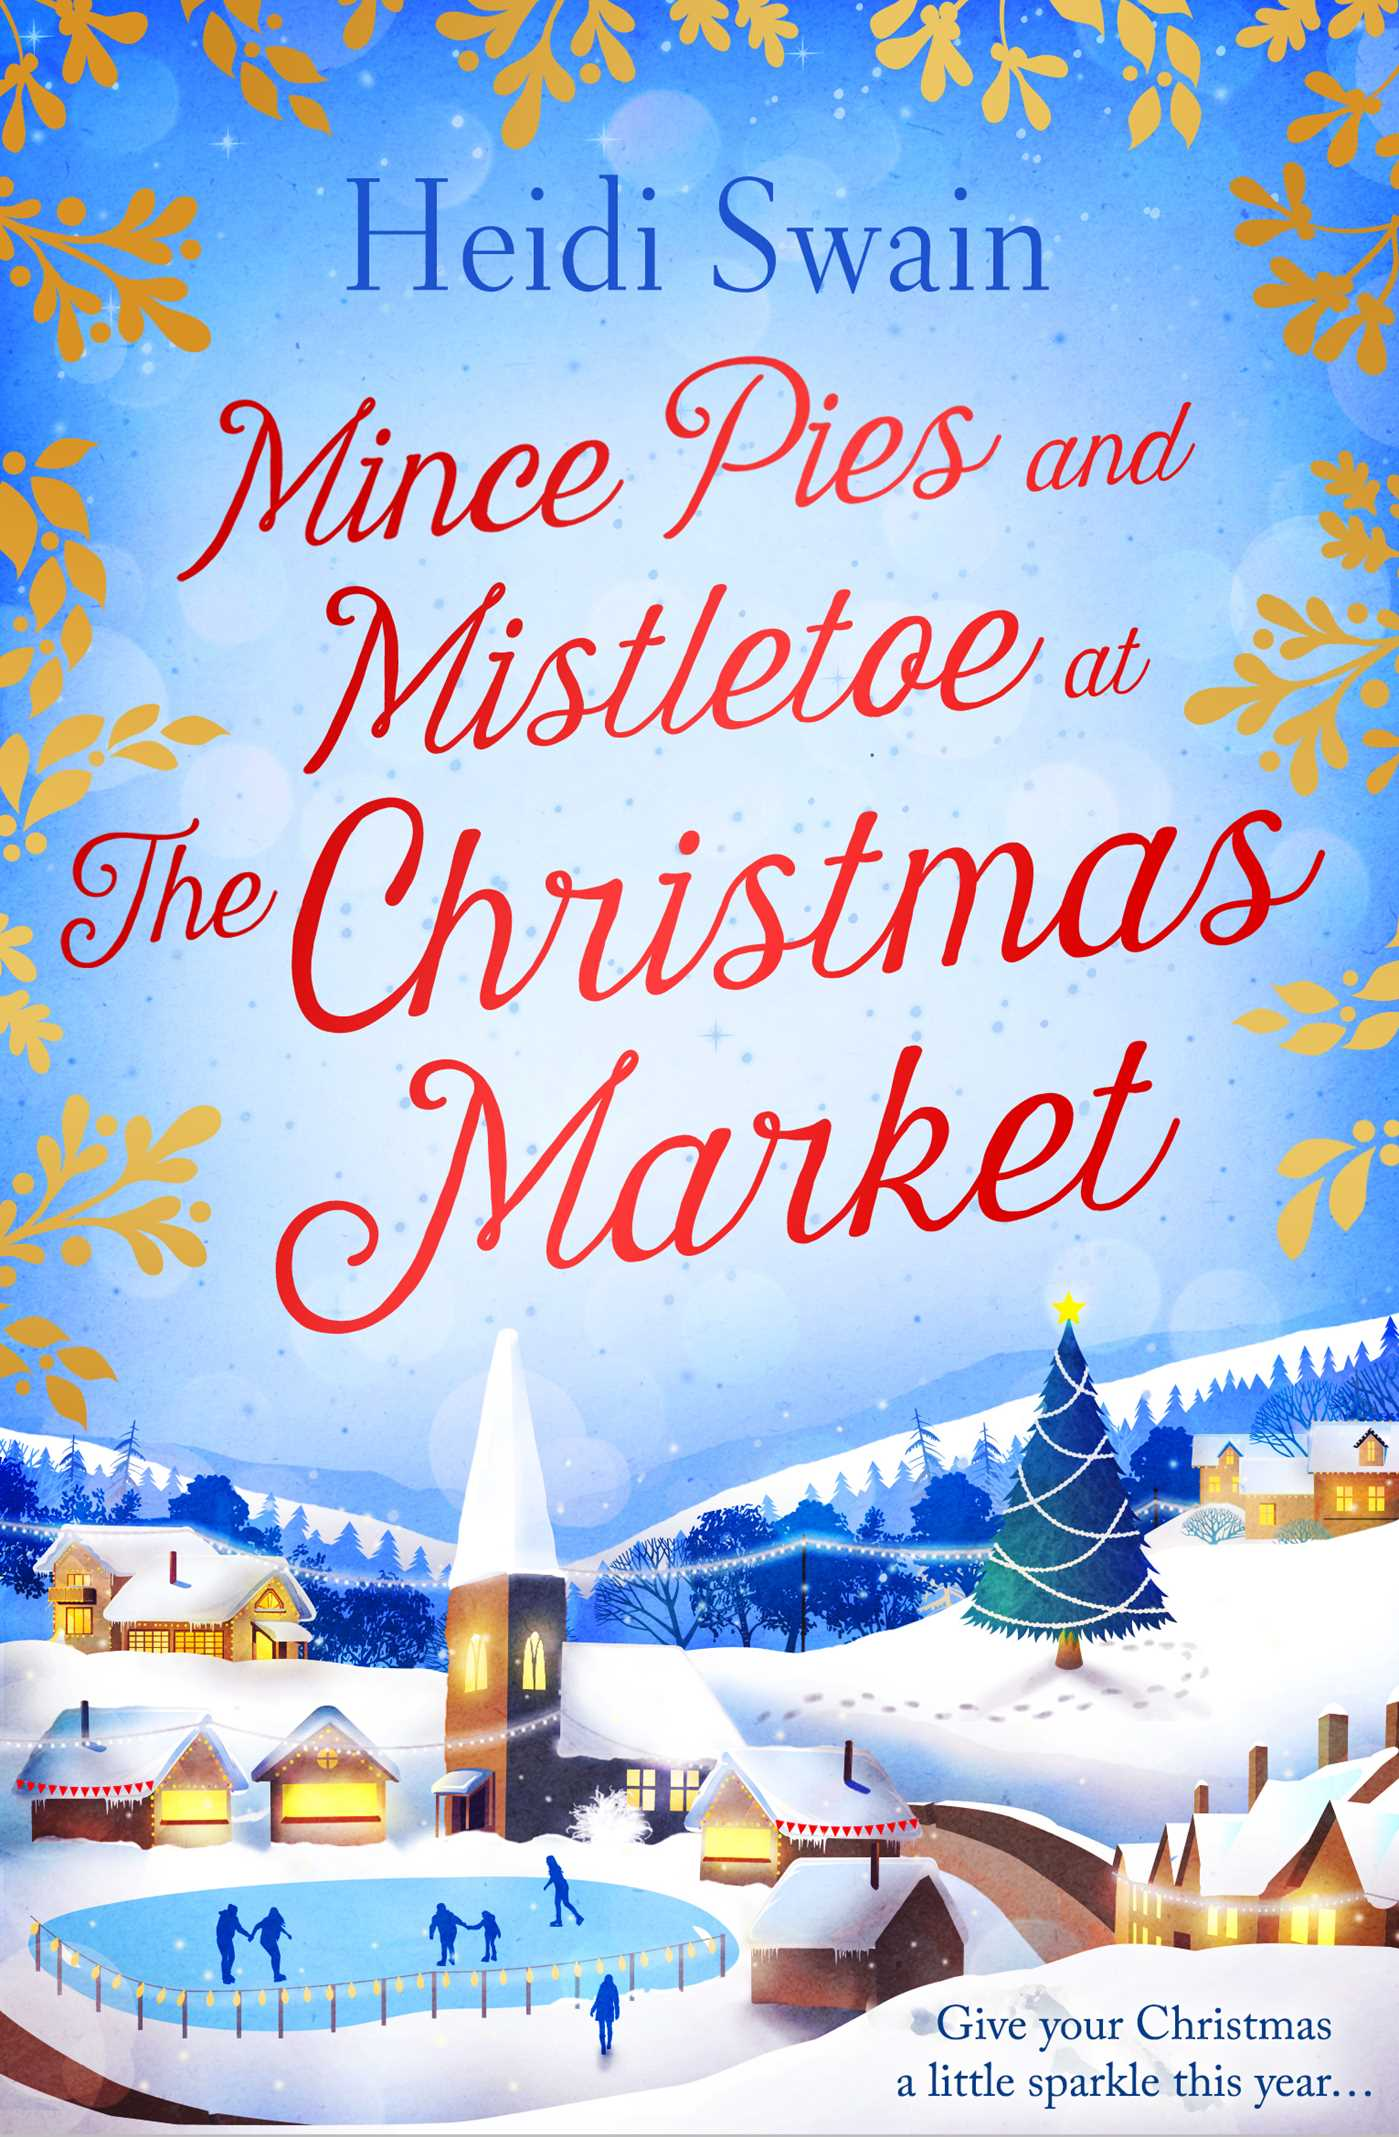 Mince pies and mistletoe at the christmas market 9781471147265 hr